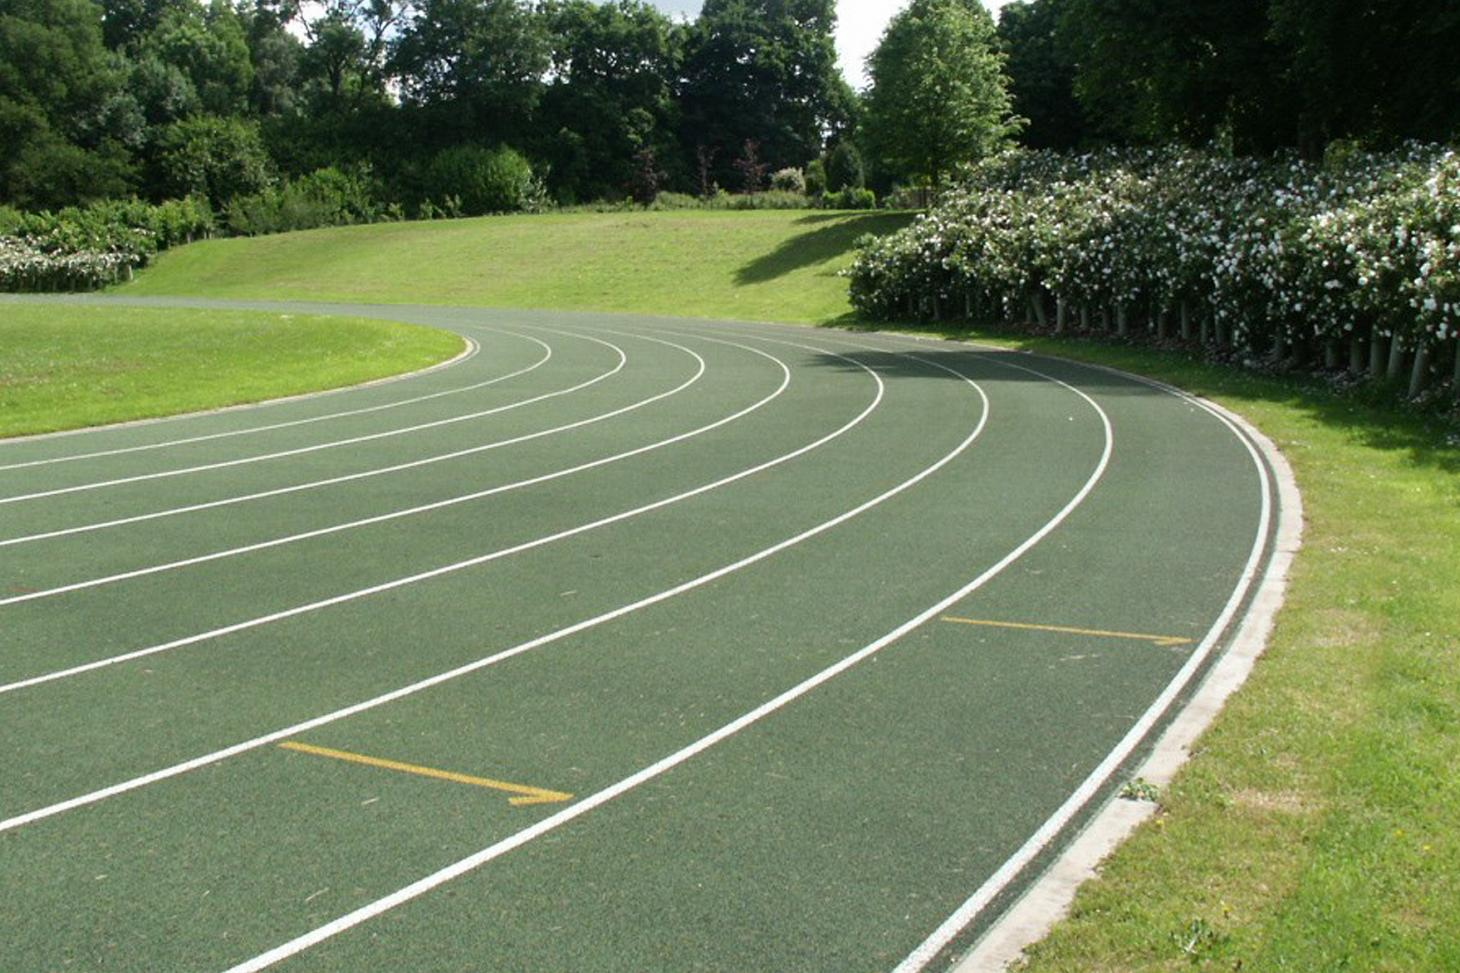 The Japanese School Track Outdoor | Artificial athletics track